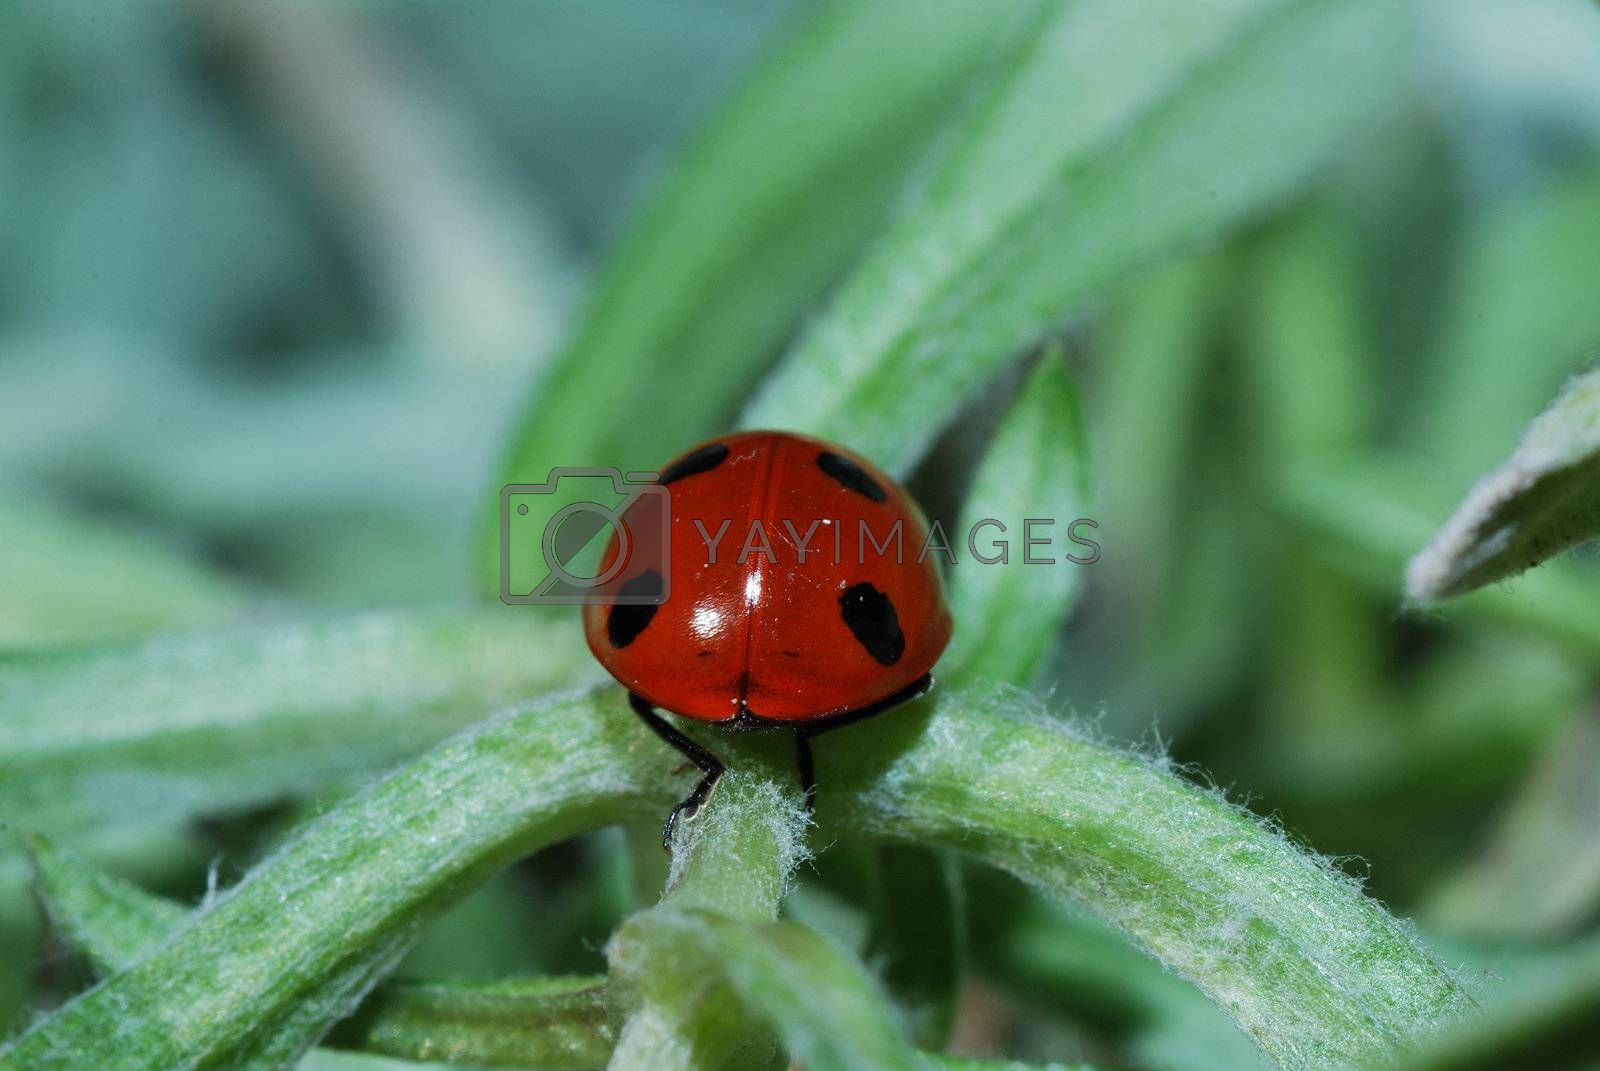 small red black ladybug on a leaf from the rear view